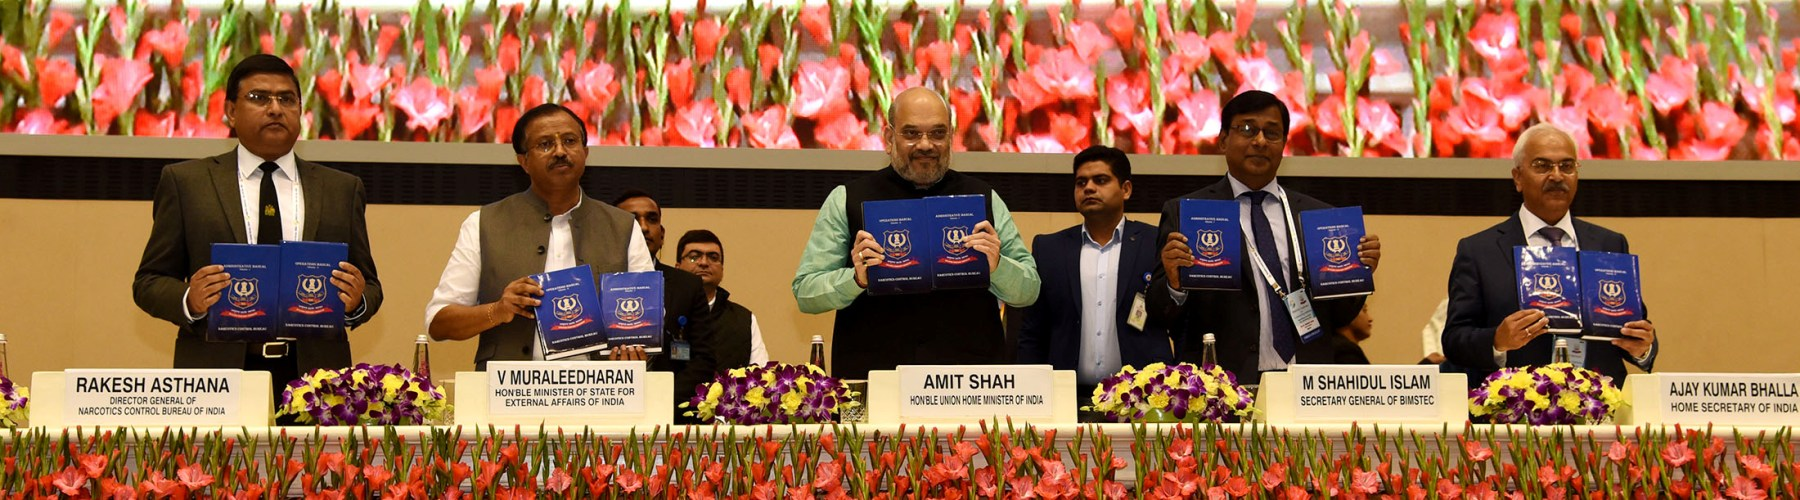 Union Minister for Home Affairs Shri Amit Shah inaugurated the two-day BIMSTEC Conference on Combating Drug Trafficking in New Delhi on February 13, 2020.